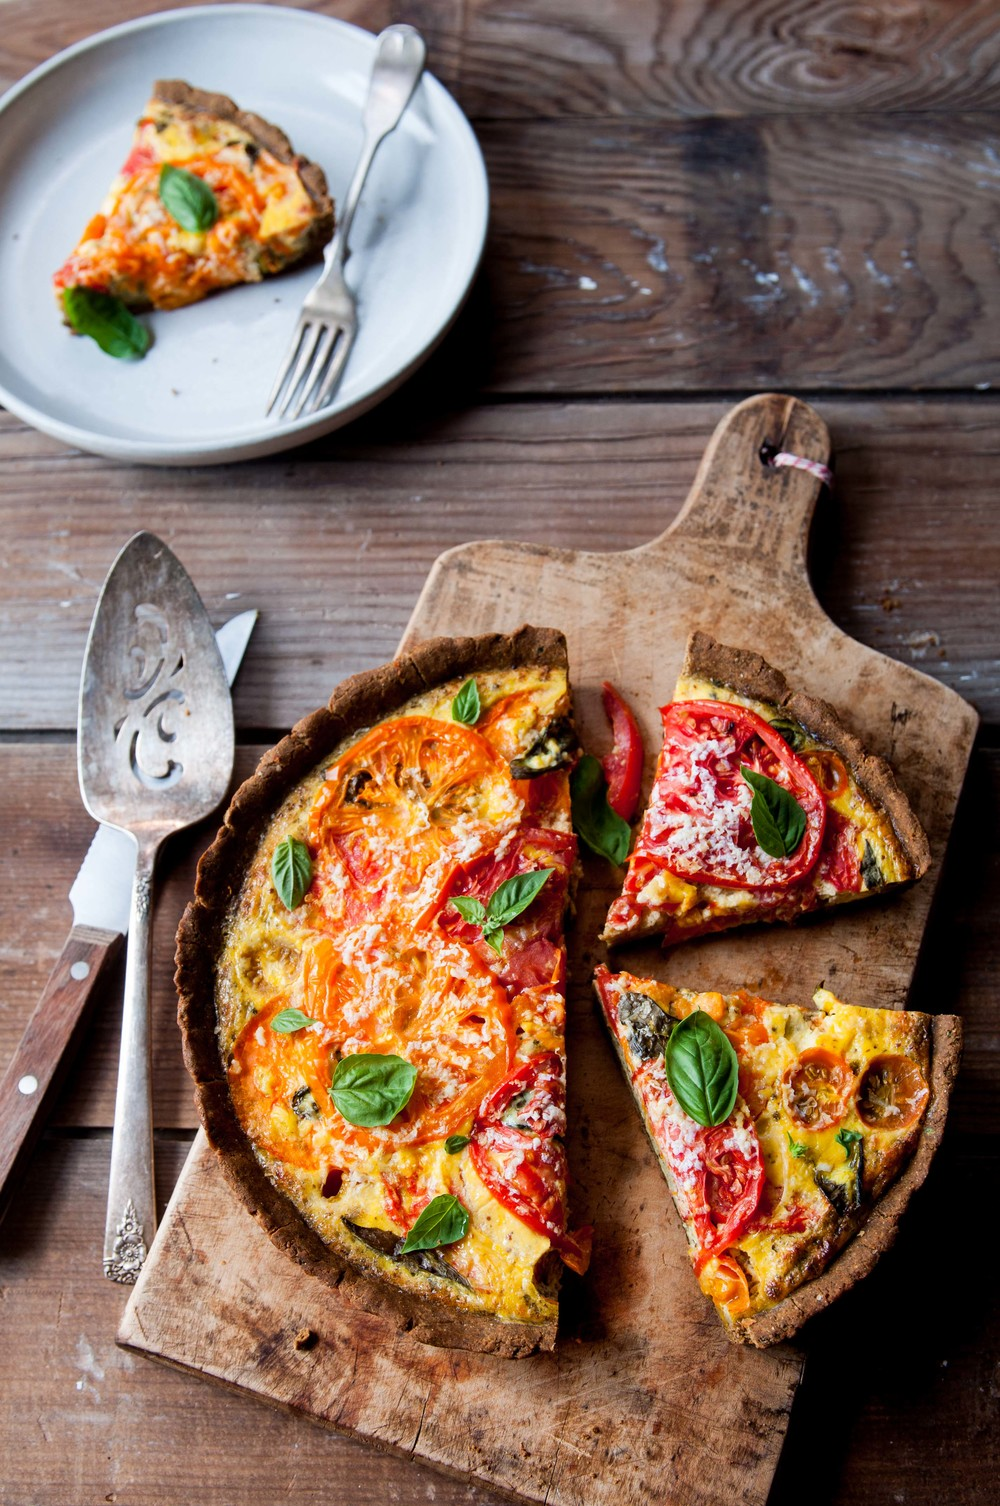 TOMATO TART WITH MILLET AND MUNG FLOUR CRUST